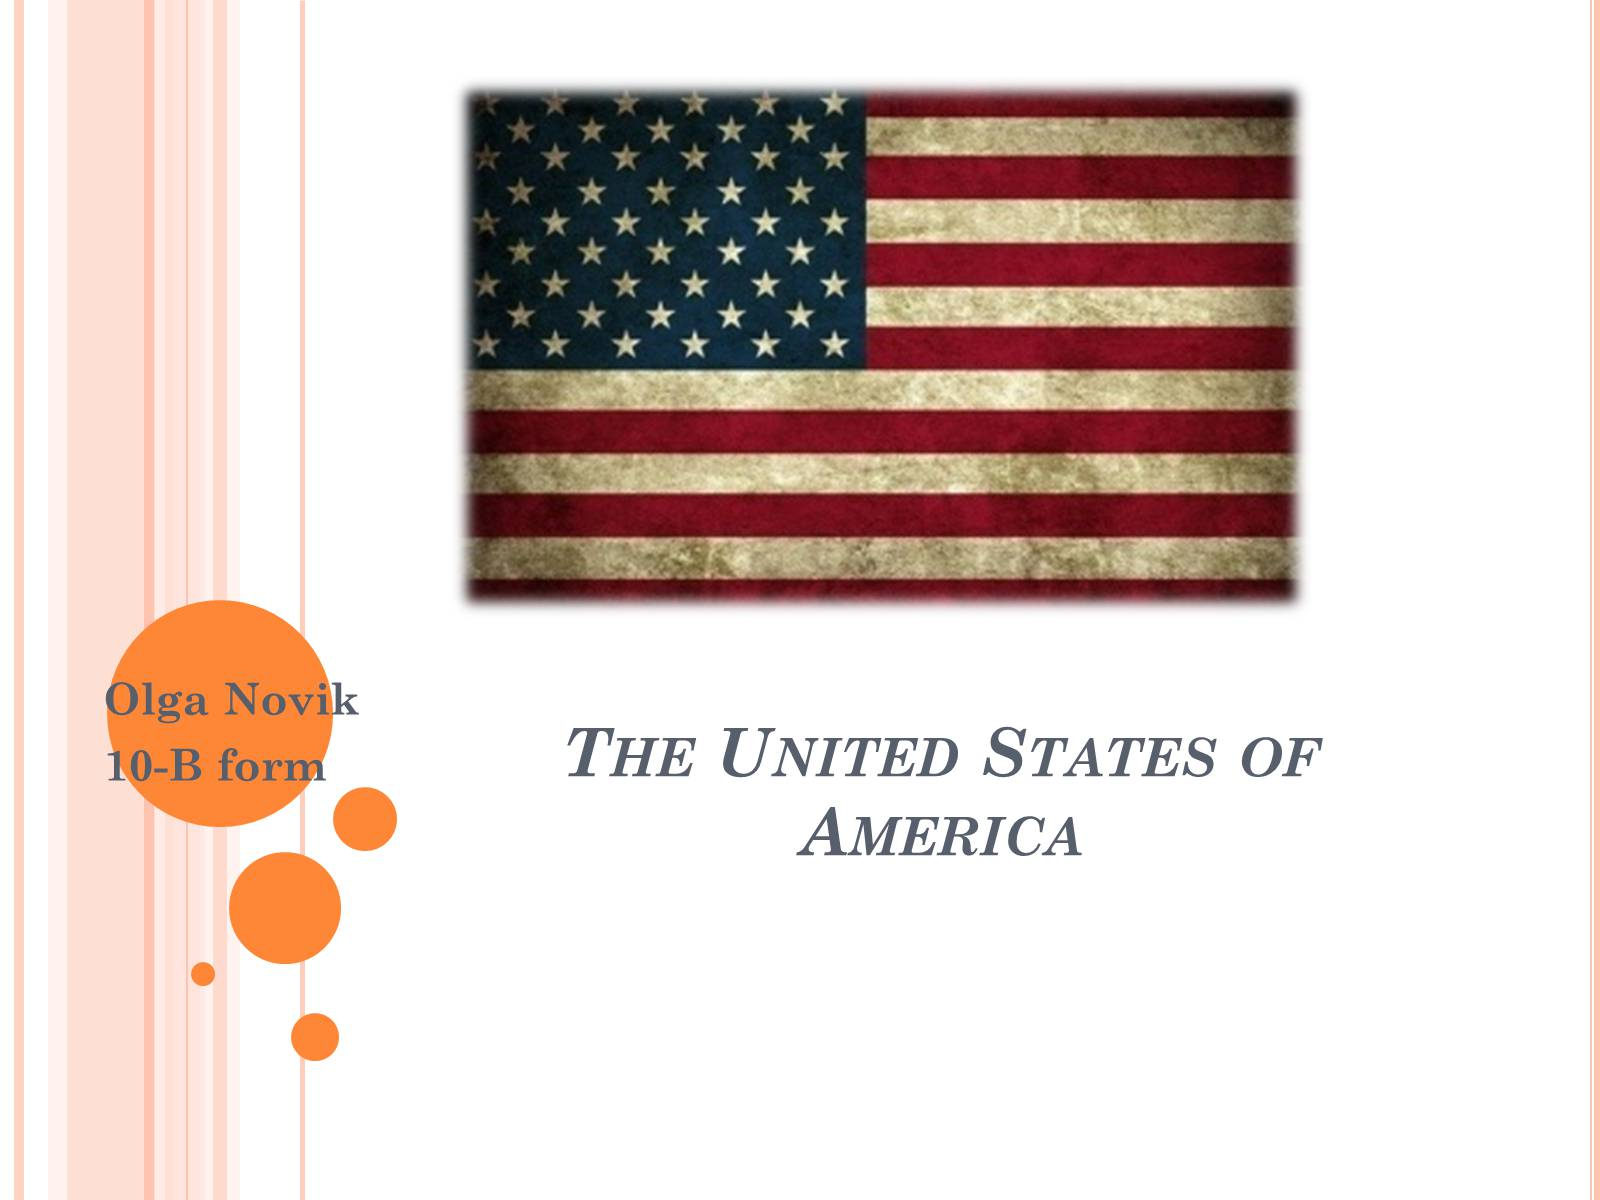 an overview of the status of the united states as the worlds only superpower The war had vaulted the united states to a new status as the world's leading creditor, the world's largest owner of gold, and, by extension, the effective custodian of the international gold.